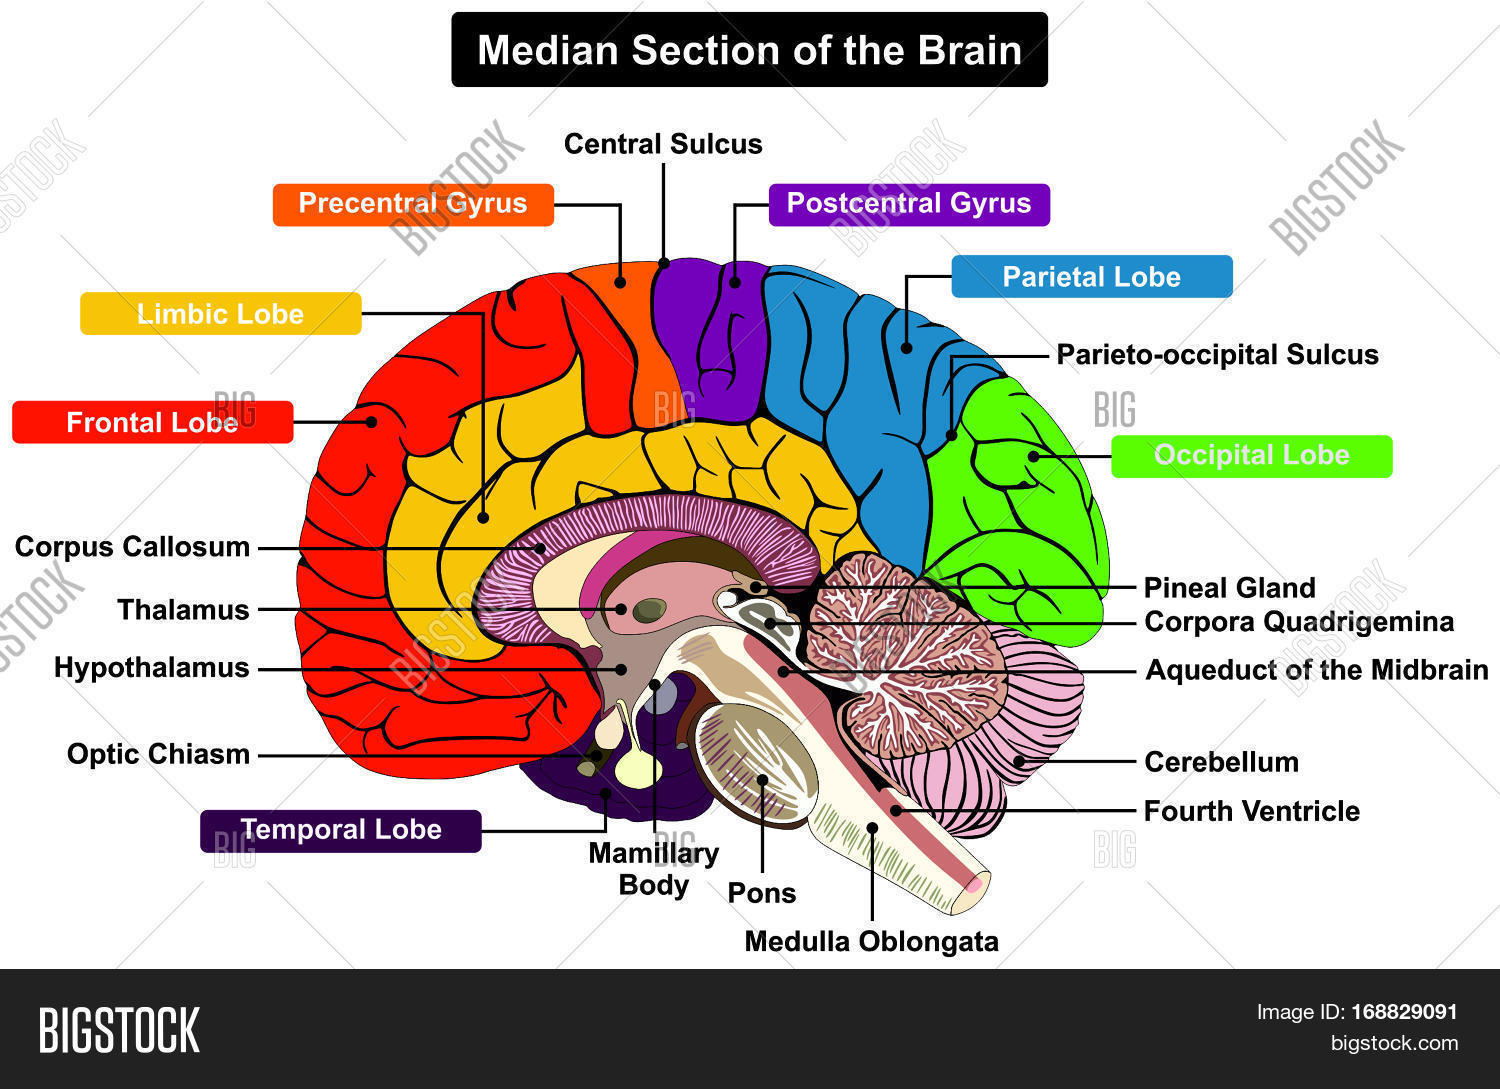 Median section human brain image photo bigstock median section of human brain anatomical structure diagram infographic chart with all parts cerebellum thalamus ccuart Images